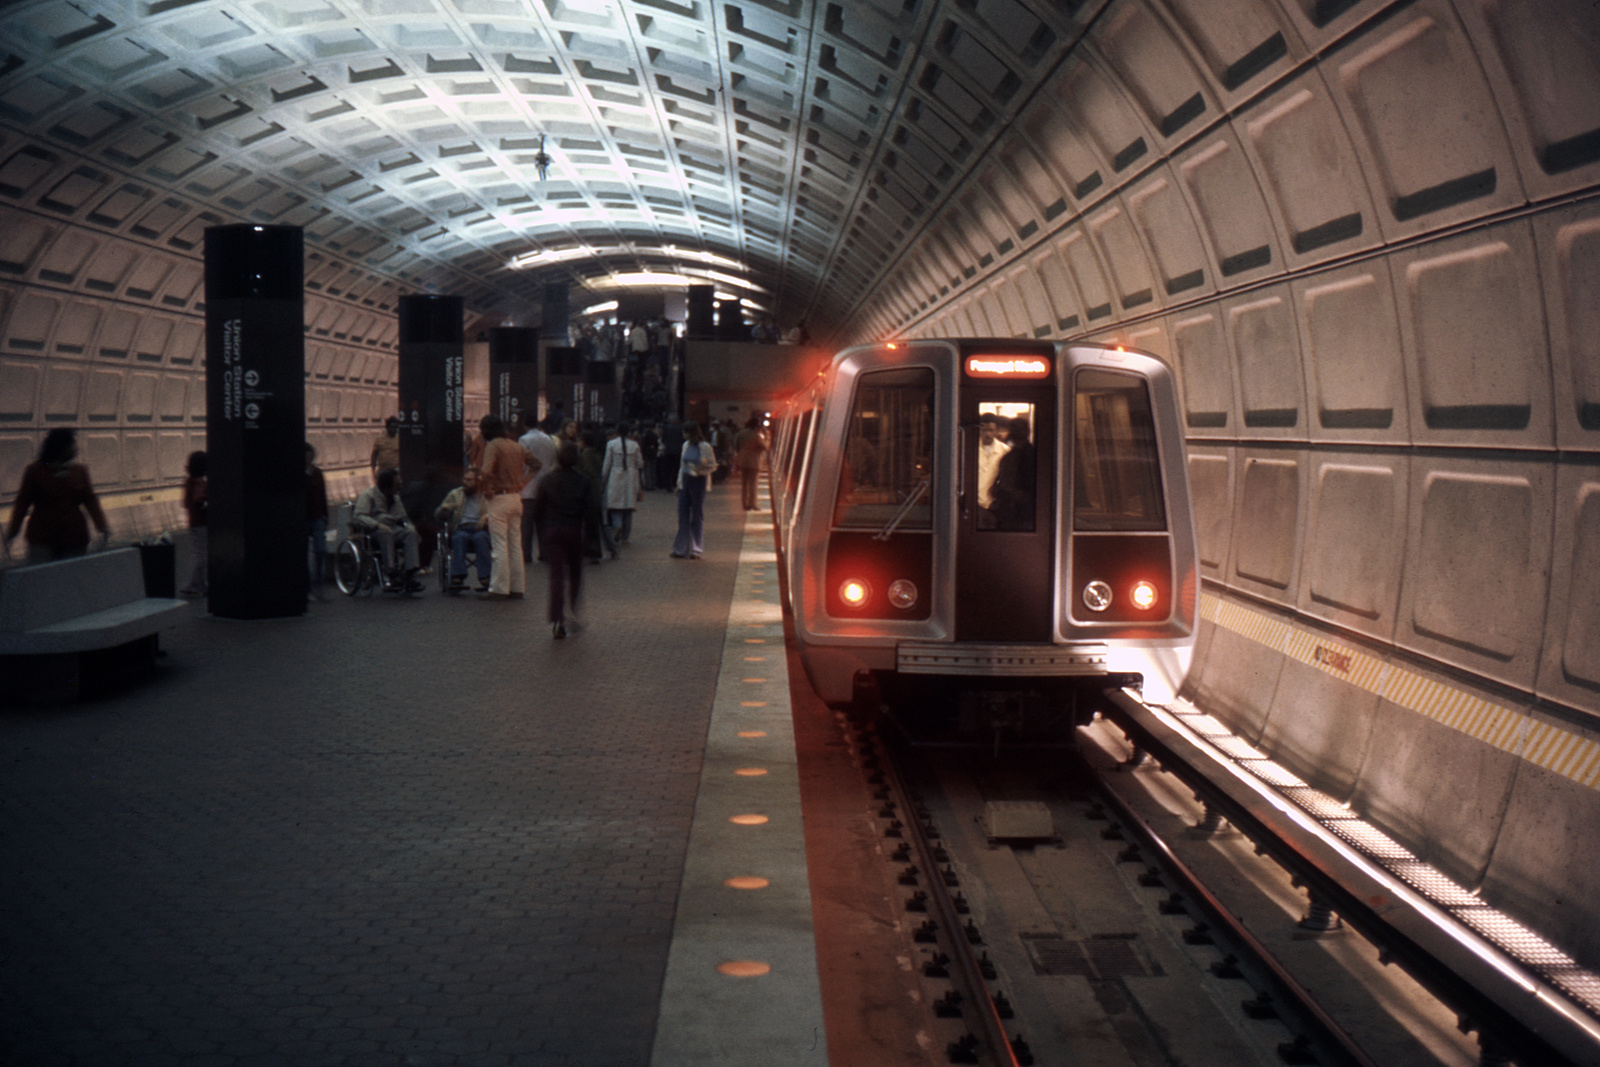 (346k, 1044x708)<br><b>Country:</b> United States<br><b>City:</b> Washington, D.C.<br><b>System:</b> Washington Metro (WMATA)<br><b>Line:</b> WMATA Red Line<br><b>Location:</b> Union Station <br><b>Collection of:</b> David Pirmann<br><b>Date:</b> 4/1976<br><b>Viewed (this week/total):</b> 7 / 6907